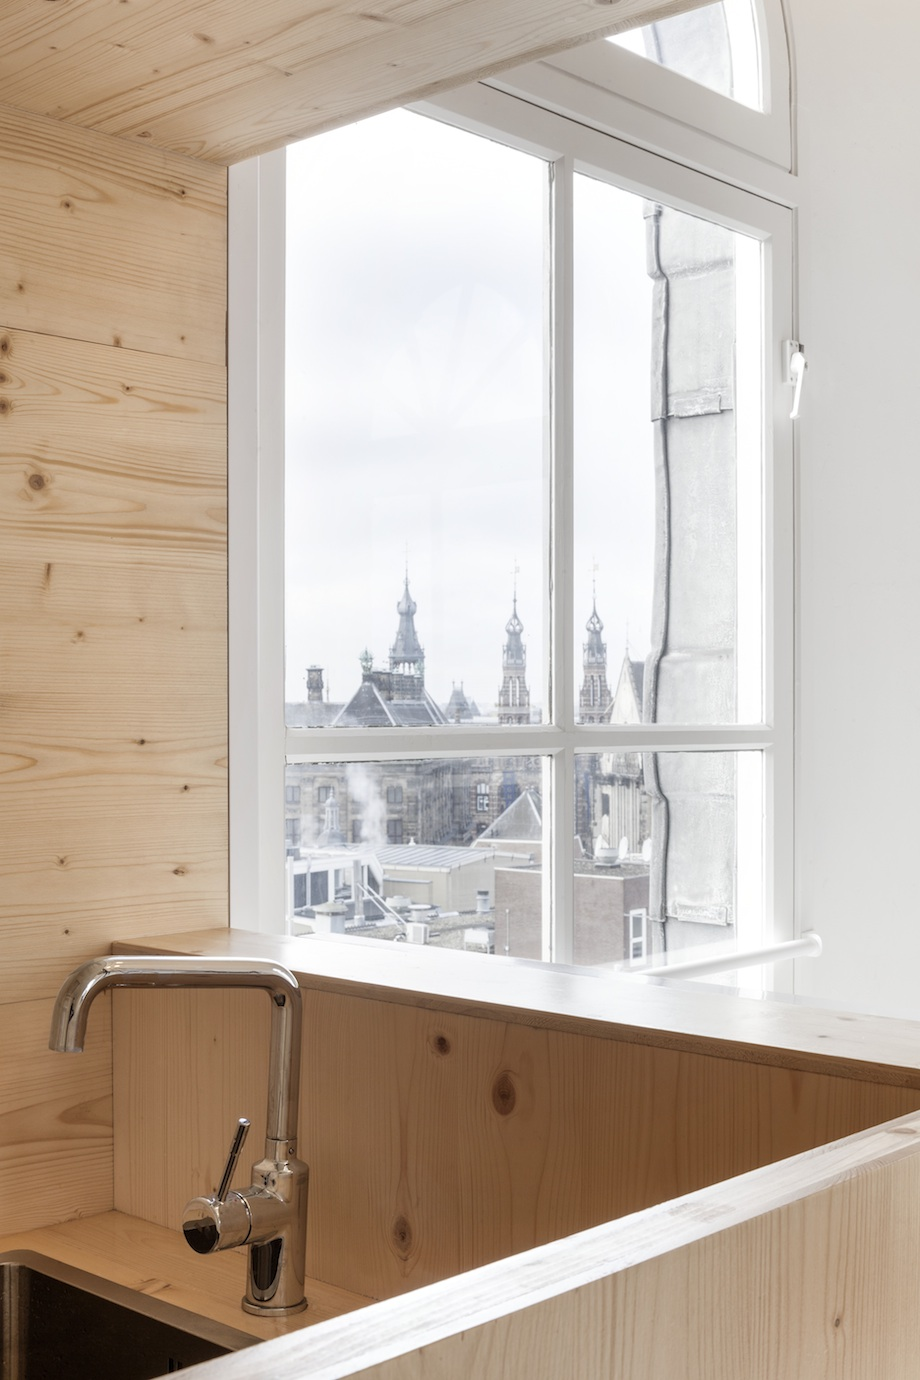 Room on the Roof Installation In The Heart of Amsterdam by i29 homesthetics (9)